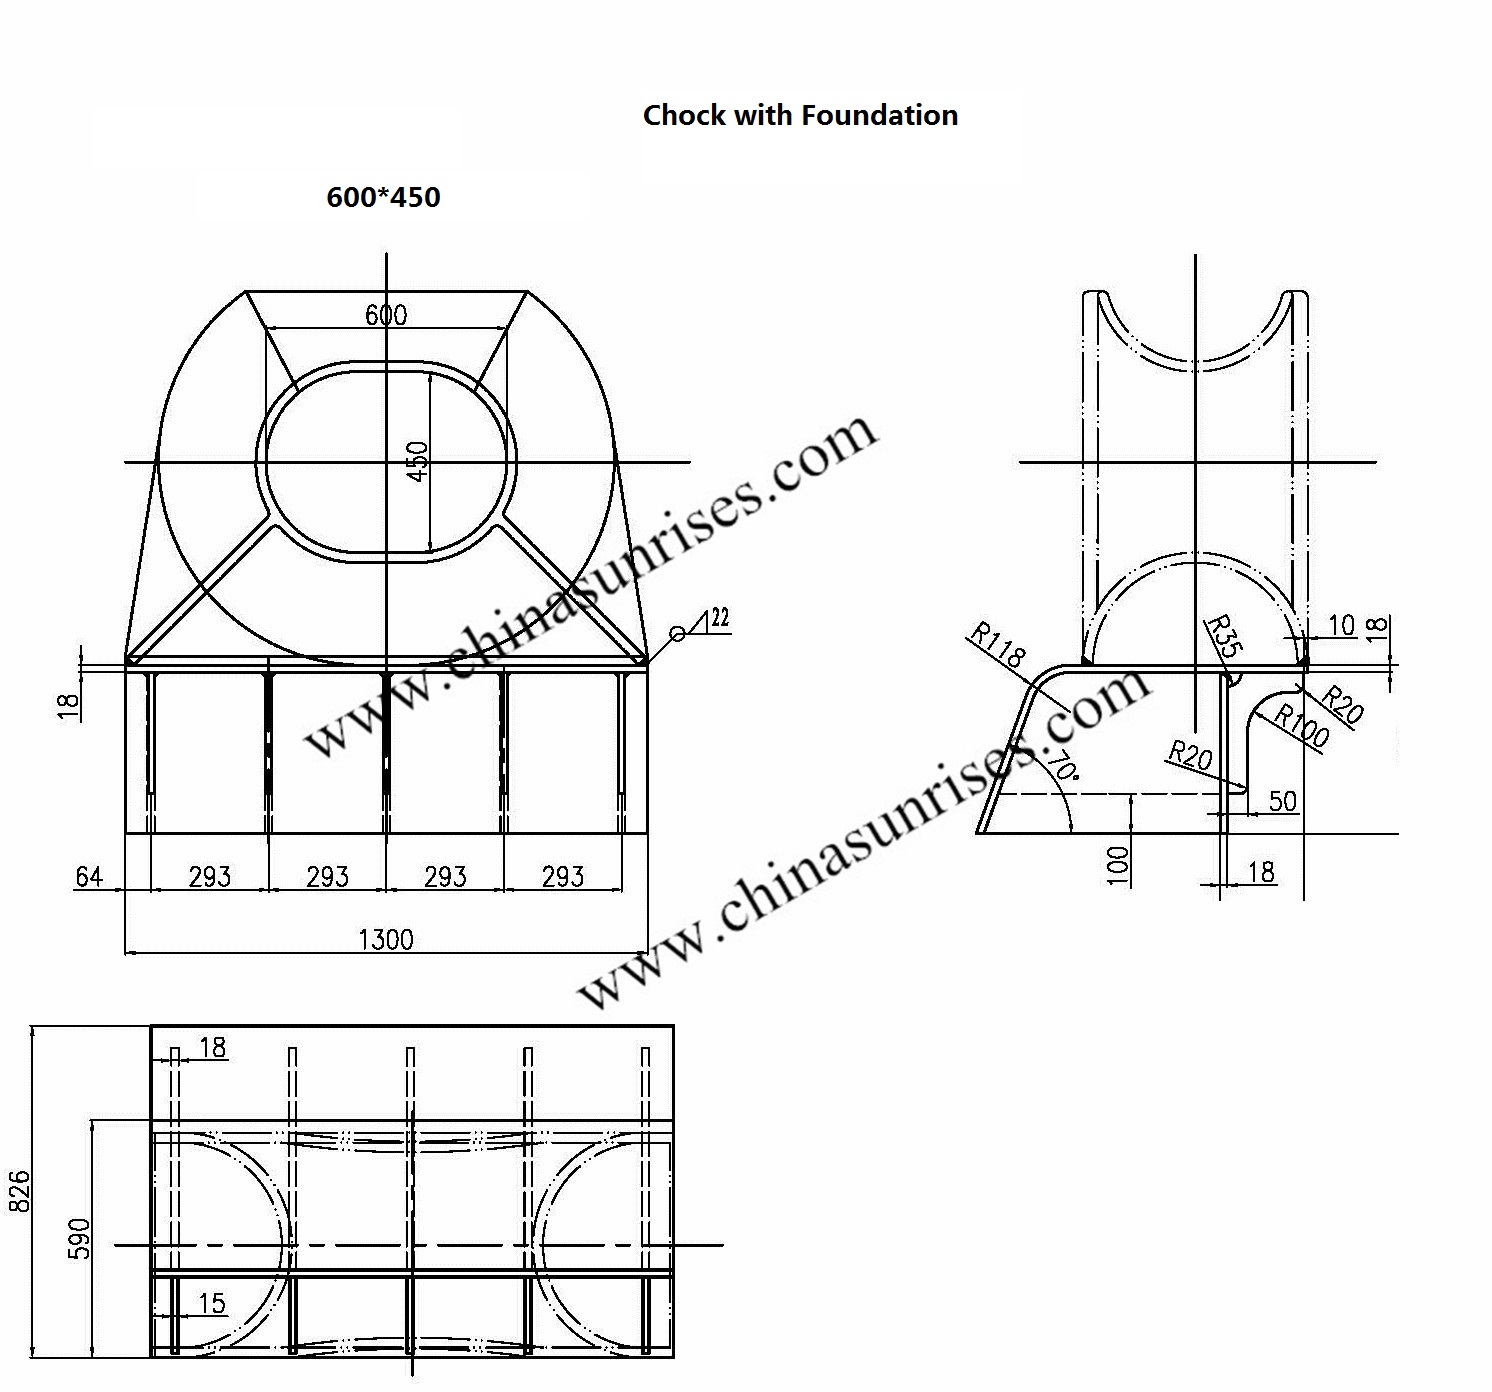 chock with foundation